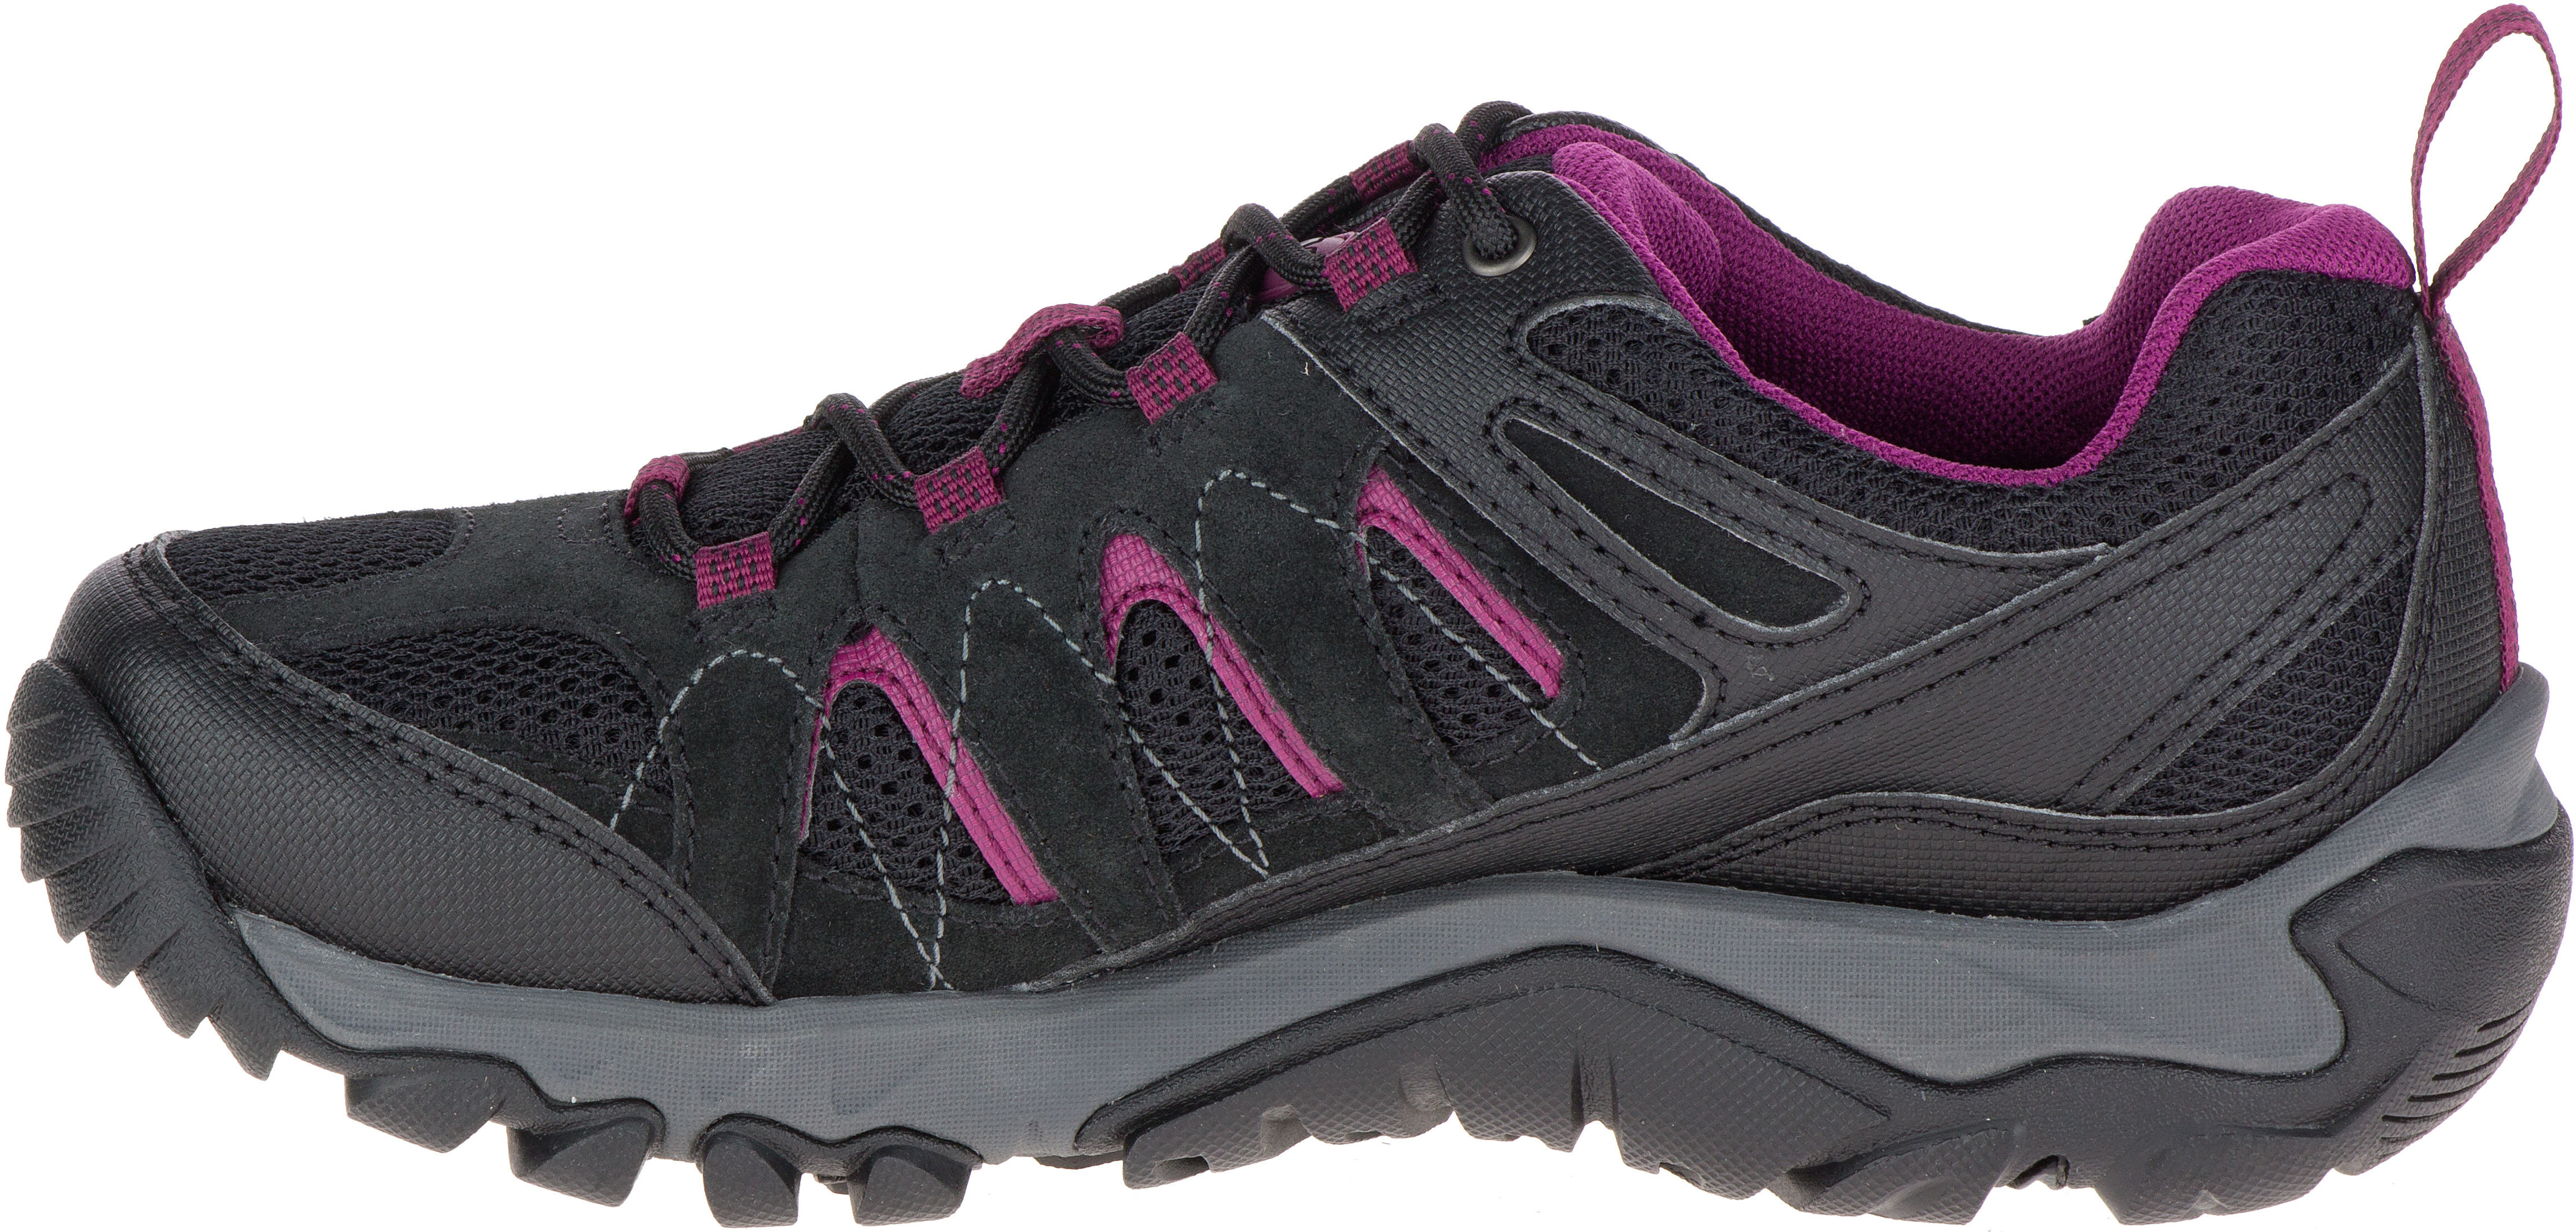 Merrell Outmost Vent GTX Shoes Women black at Addnature.co.uk b42d54a42c